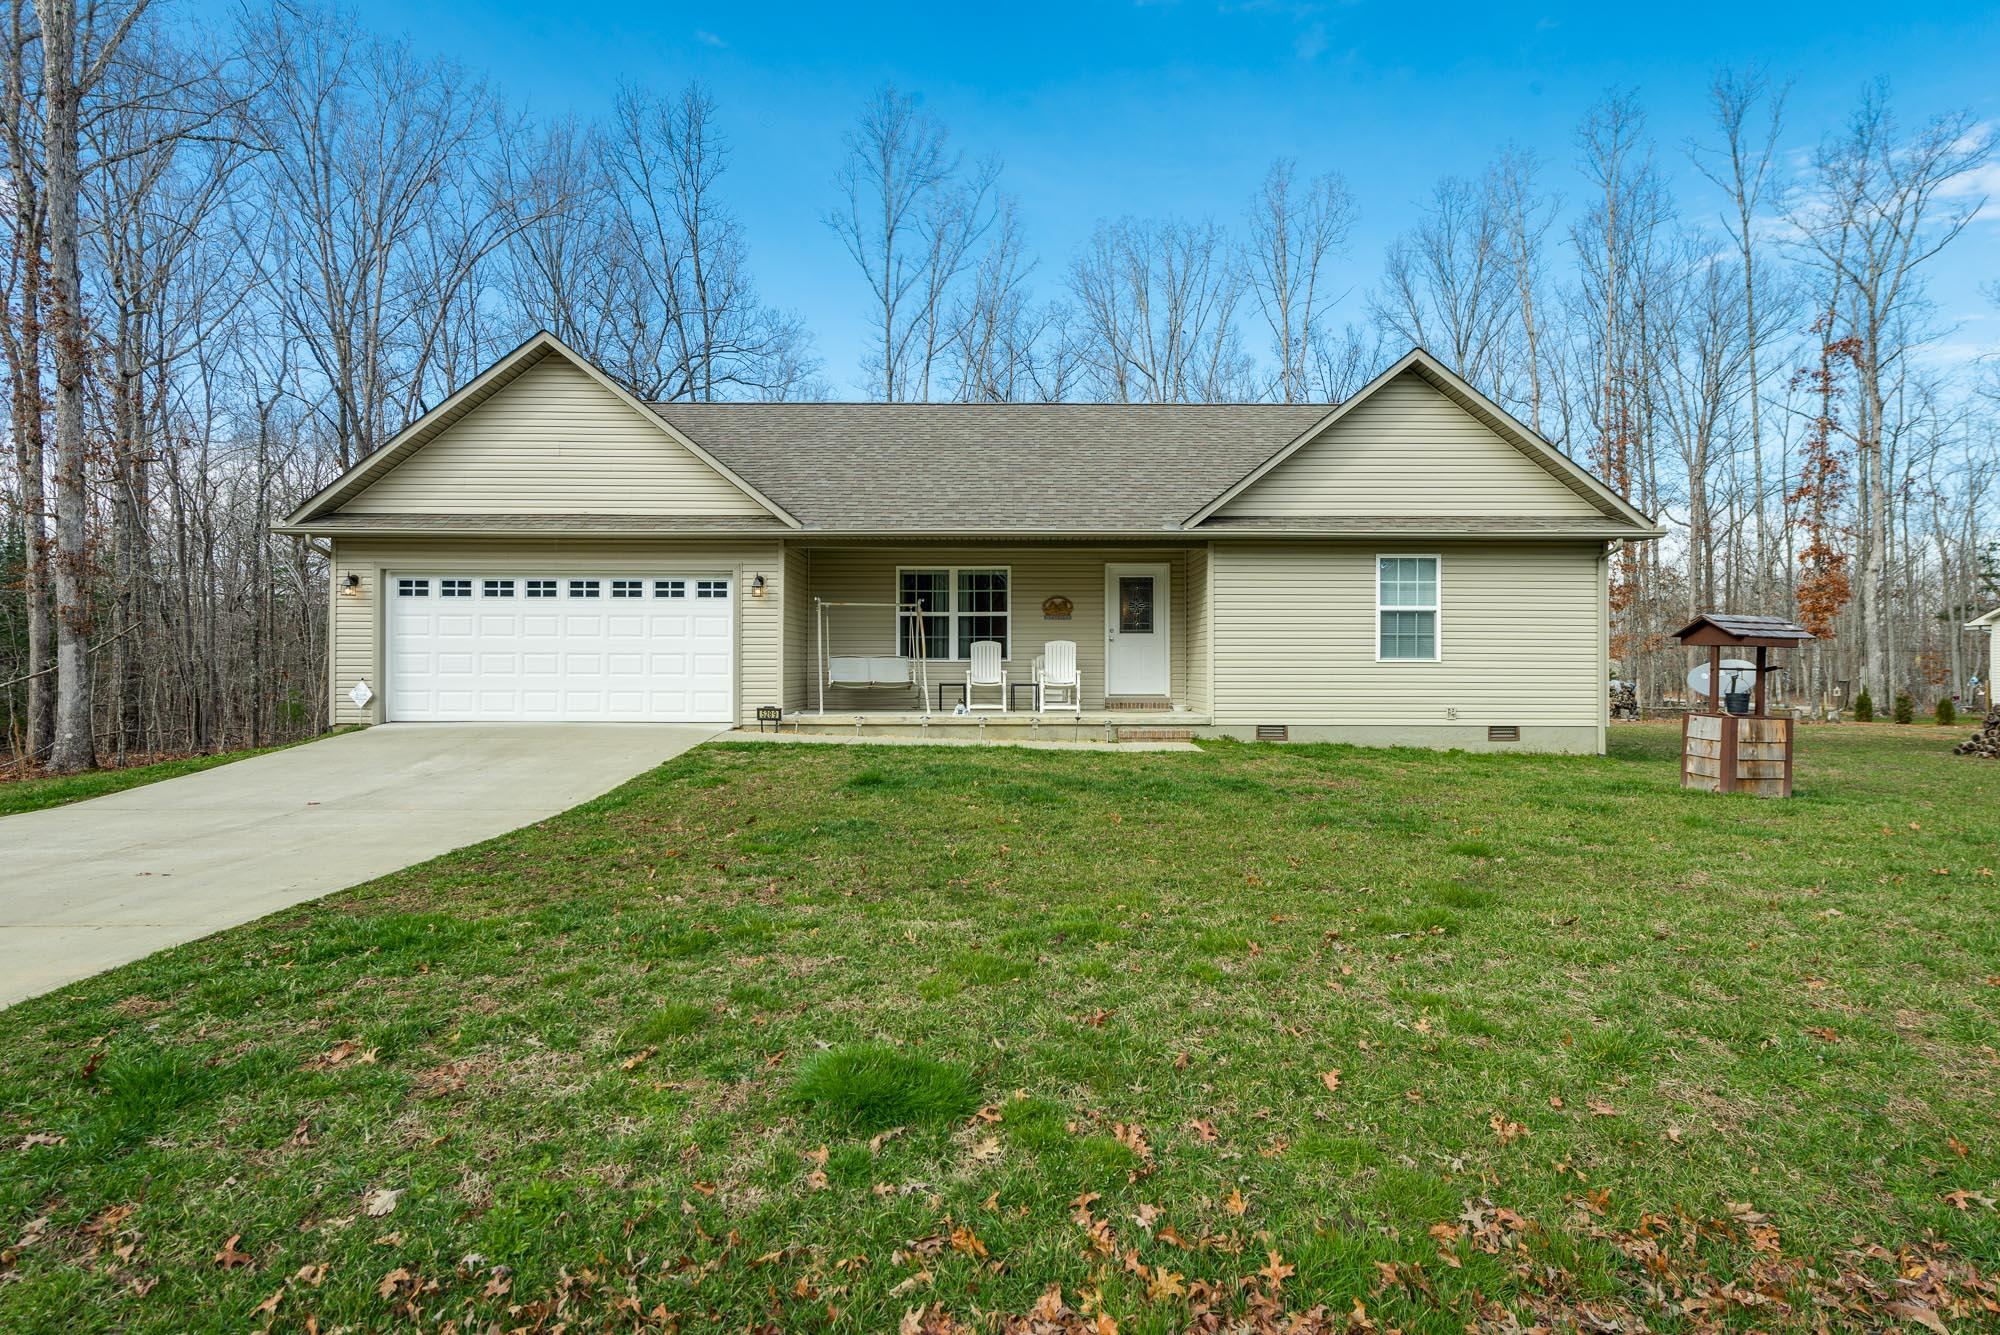 5289 Cheyenne Dr, Crossville, TN 38572 - Crossville, TN real estate listing